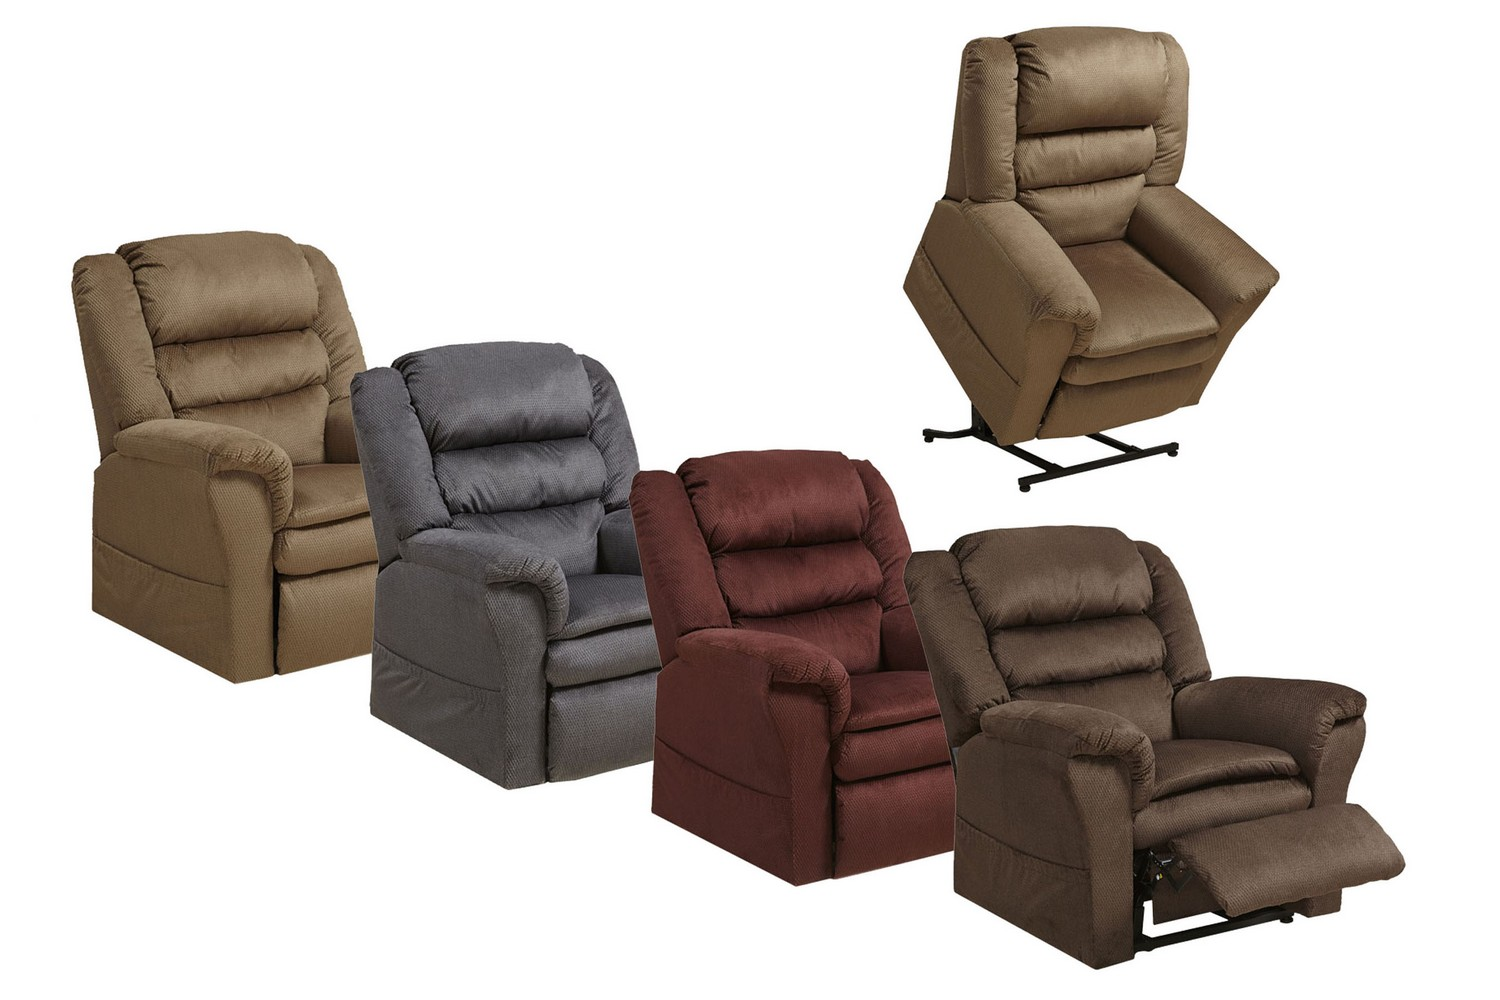 Catnapper preston power lift recliner with pillowtop seat berry cn